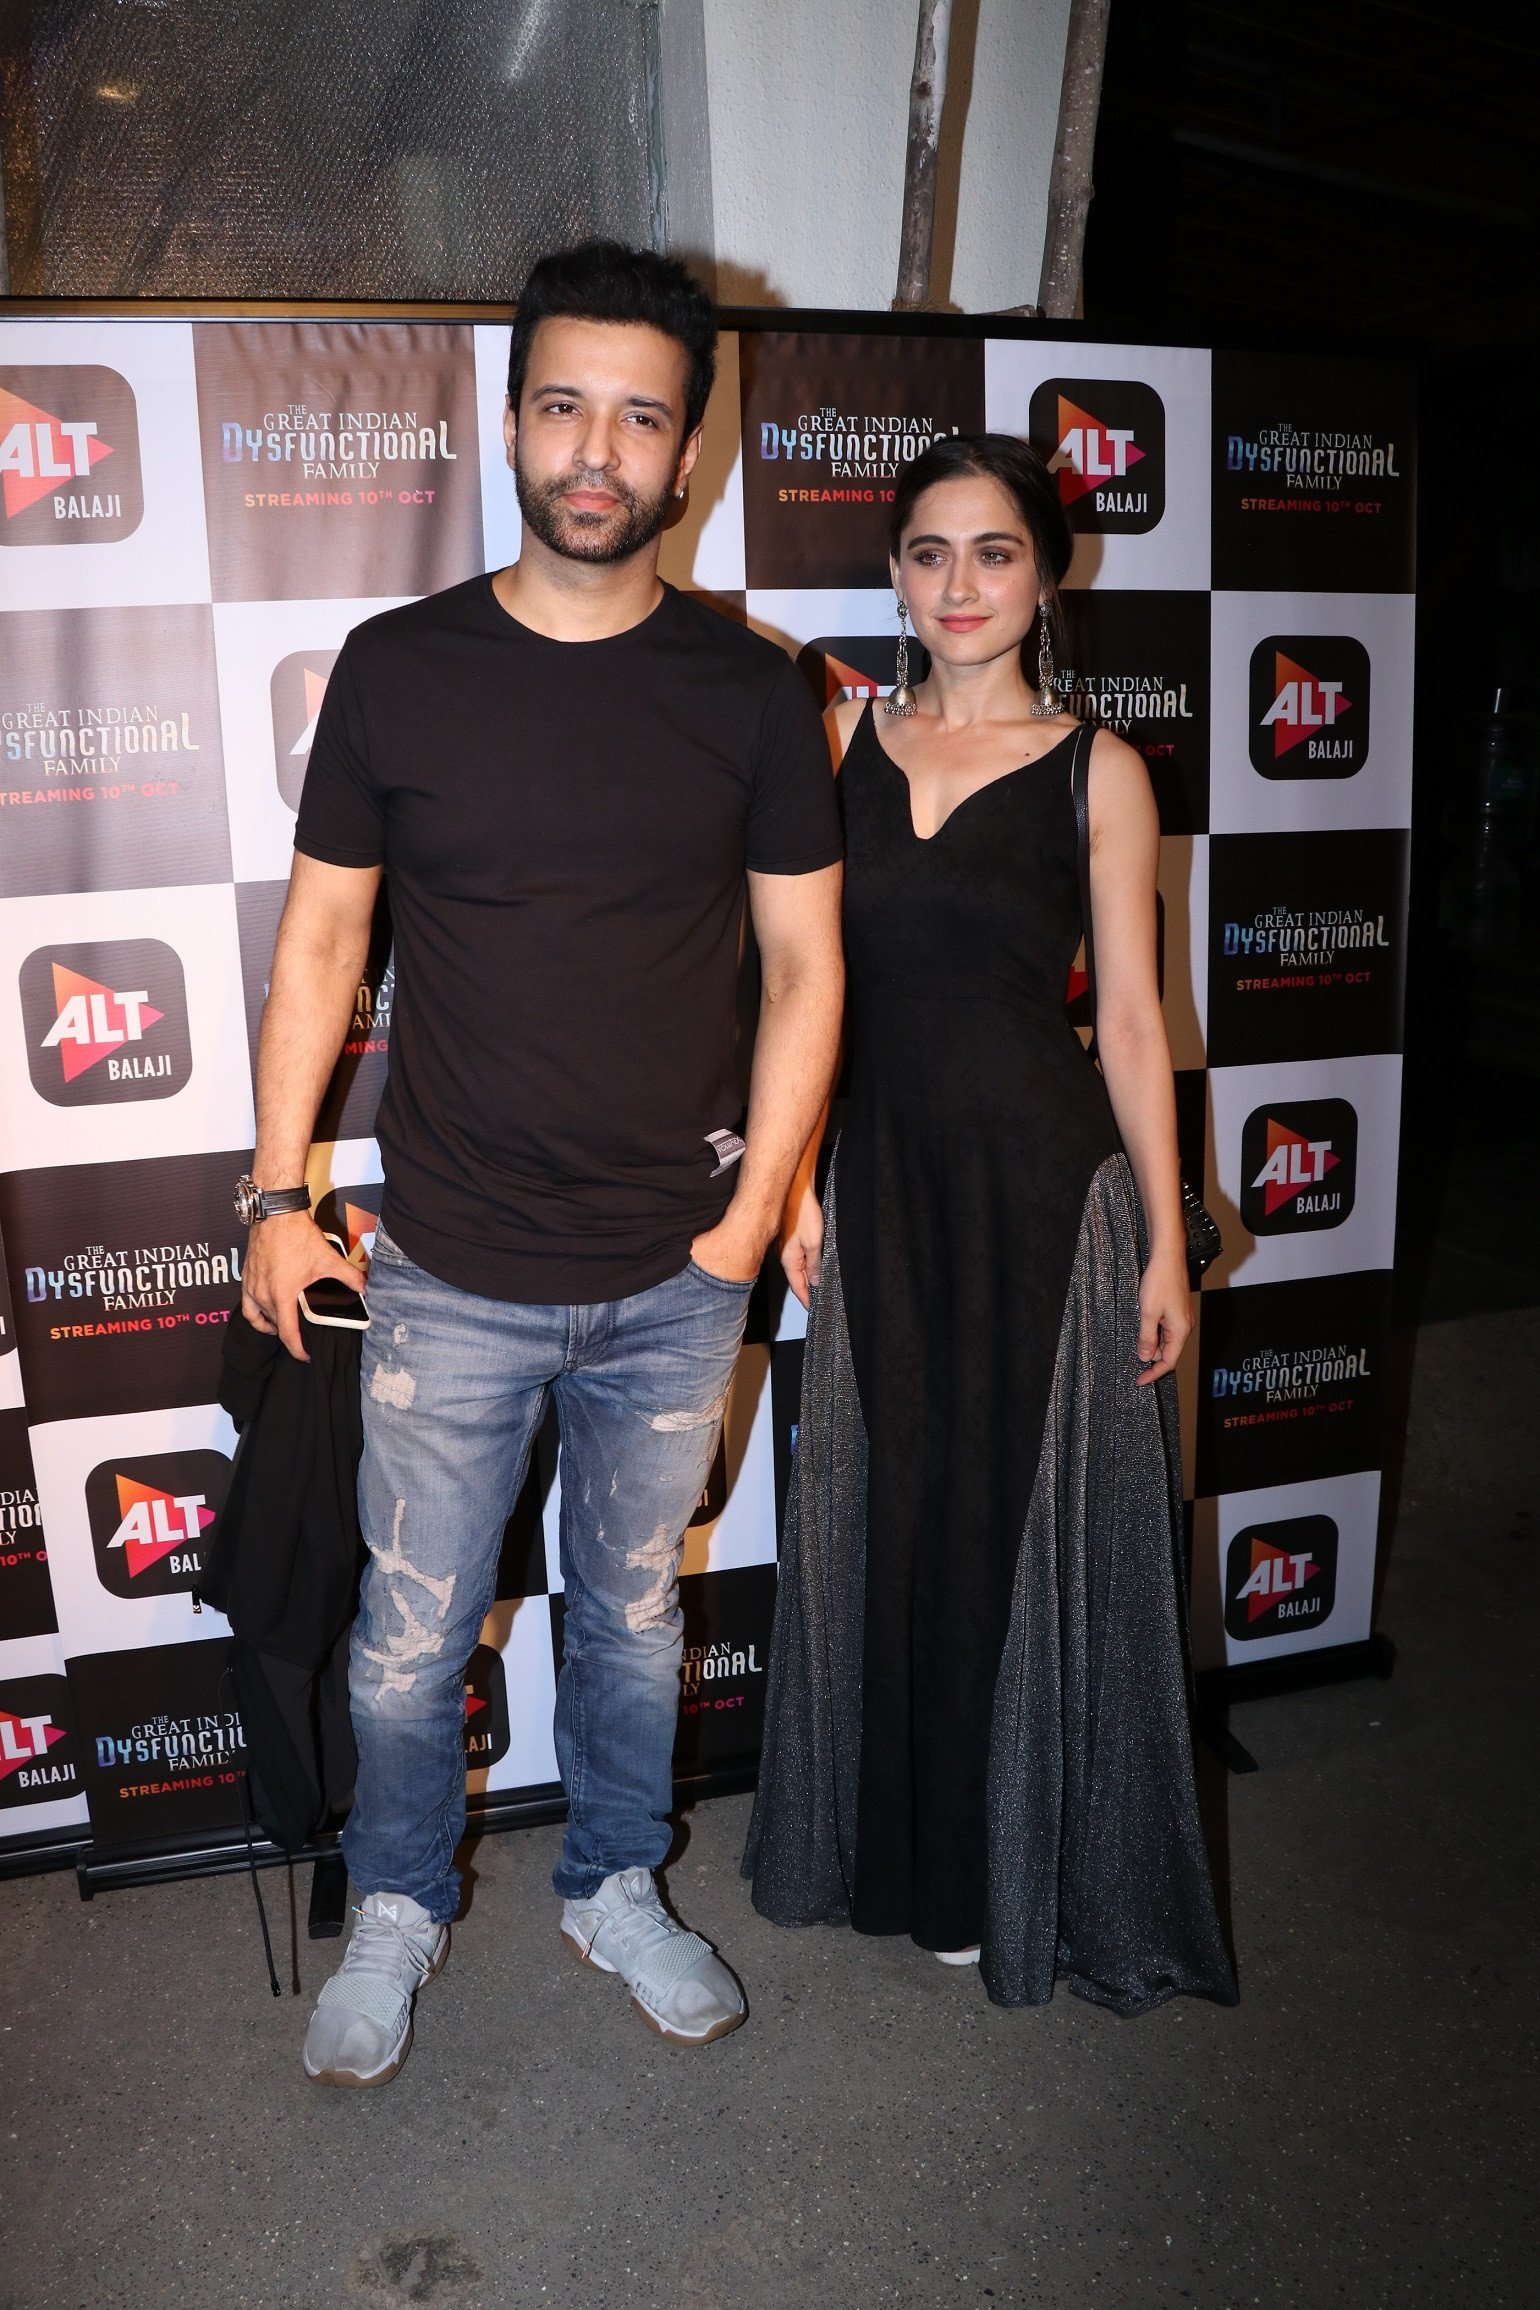 ALT Balaji's 'The Great Indian Dysfunctional Family' special screening gets a thumbs up